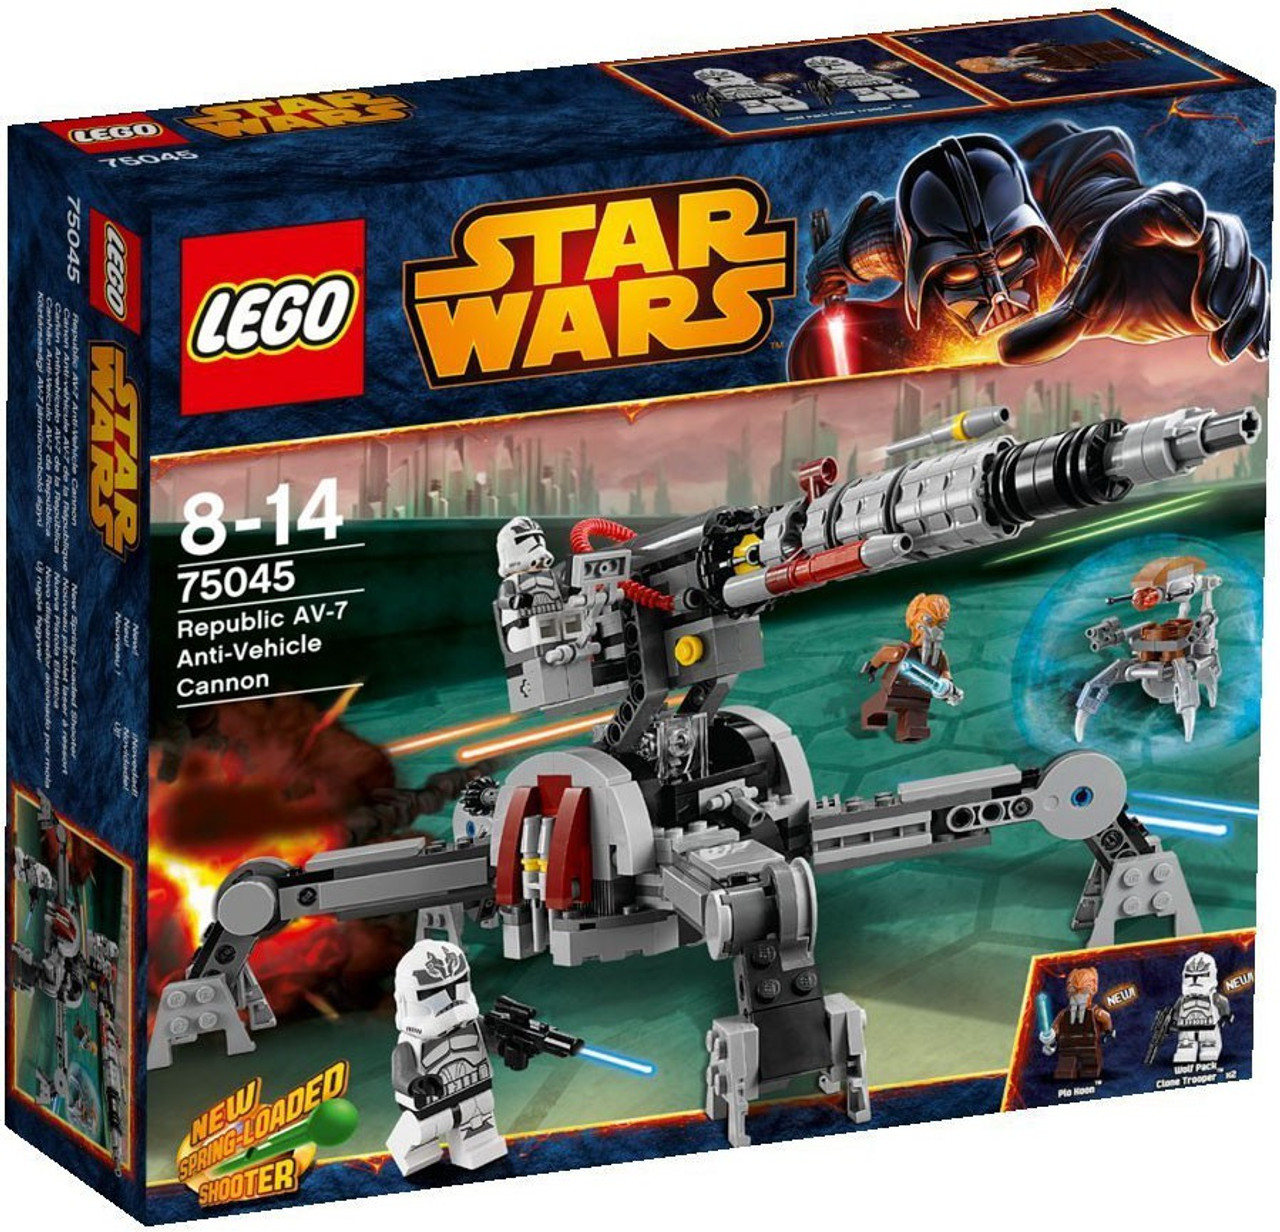 LEGO Star Wars The Clone Wars Republic AV-7 Anti-Vehicle Cannon Set #75045